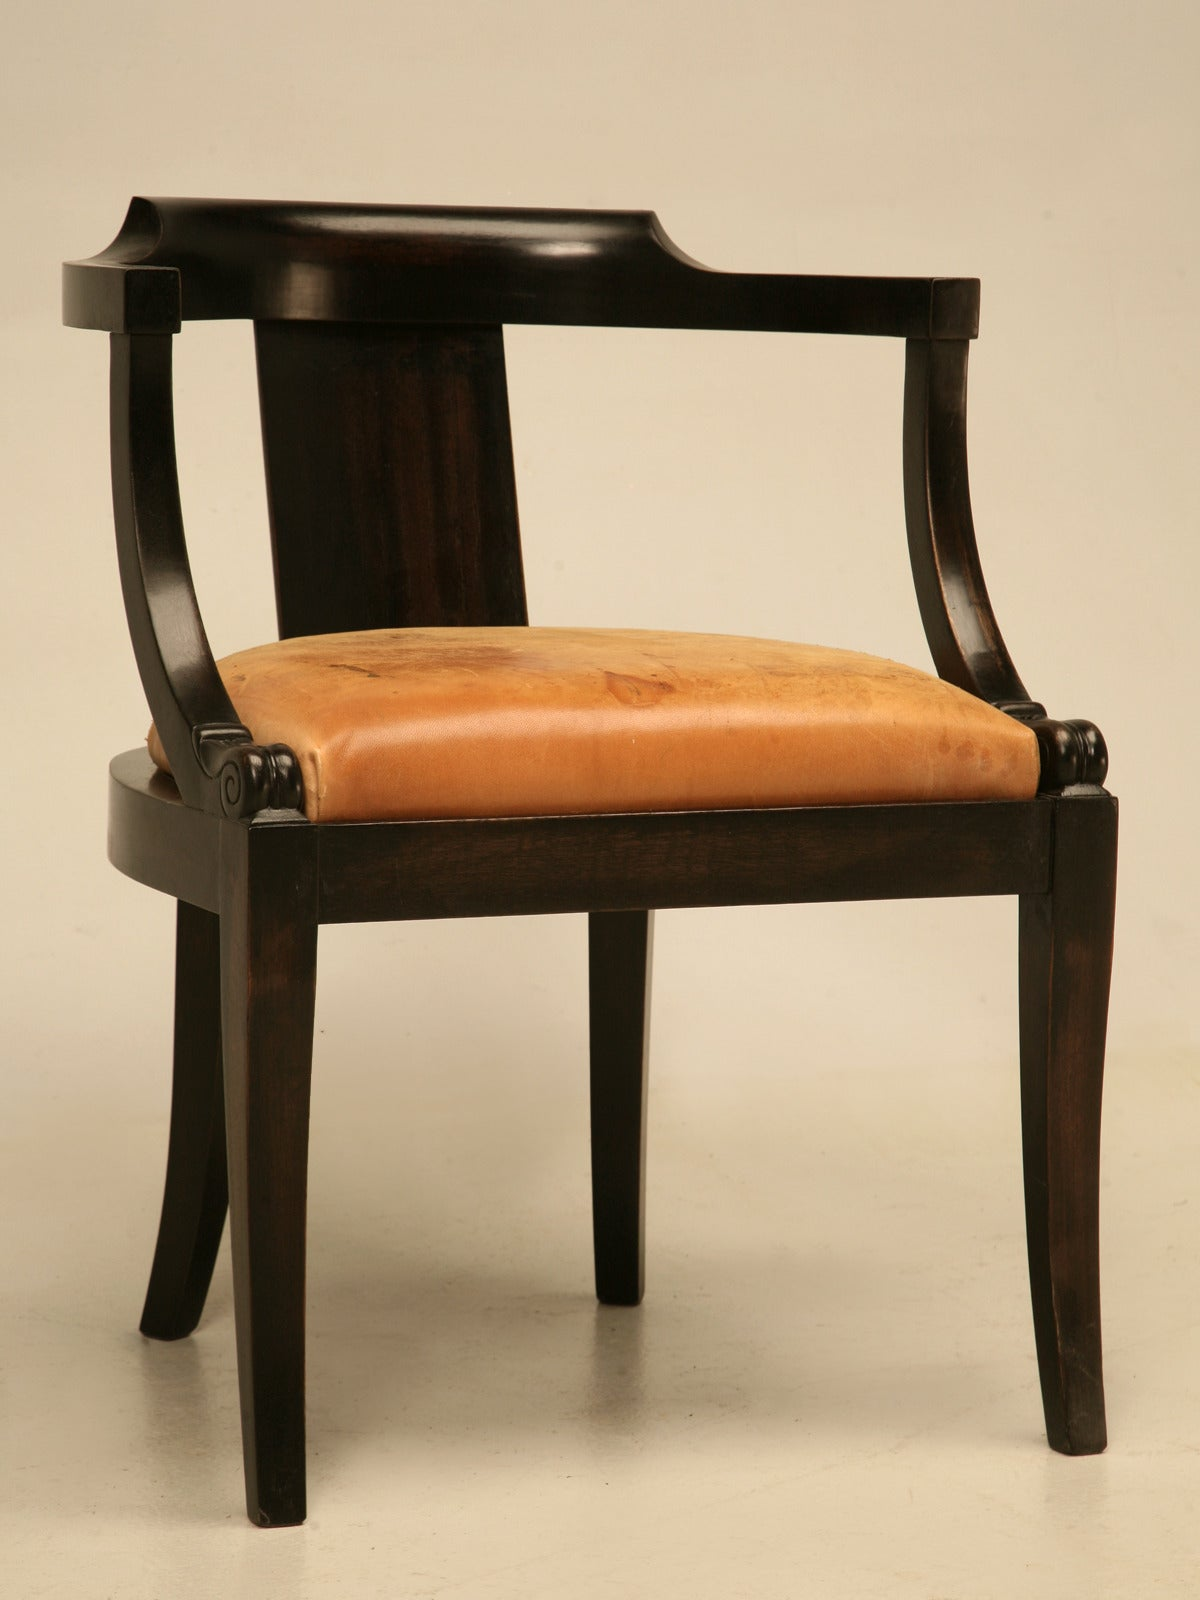 Antique French solid mahogany desk chair in a beautiful ebonized finish that lets the warm brown tones of the wood to gently peek through the black. The seat cushion is old leather with new padding underneath and the frame has been properly